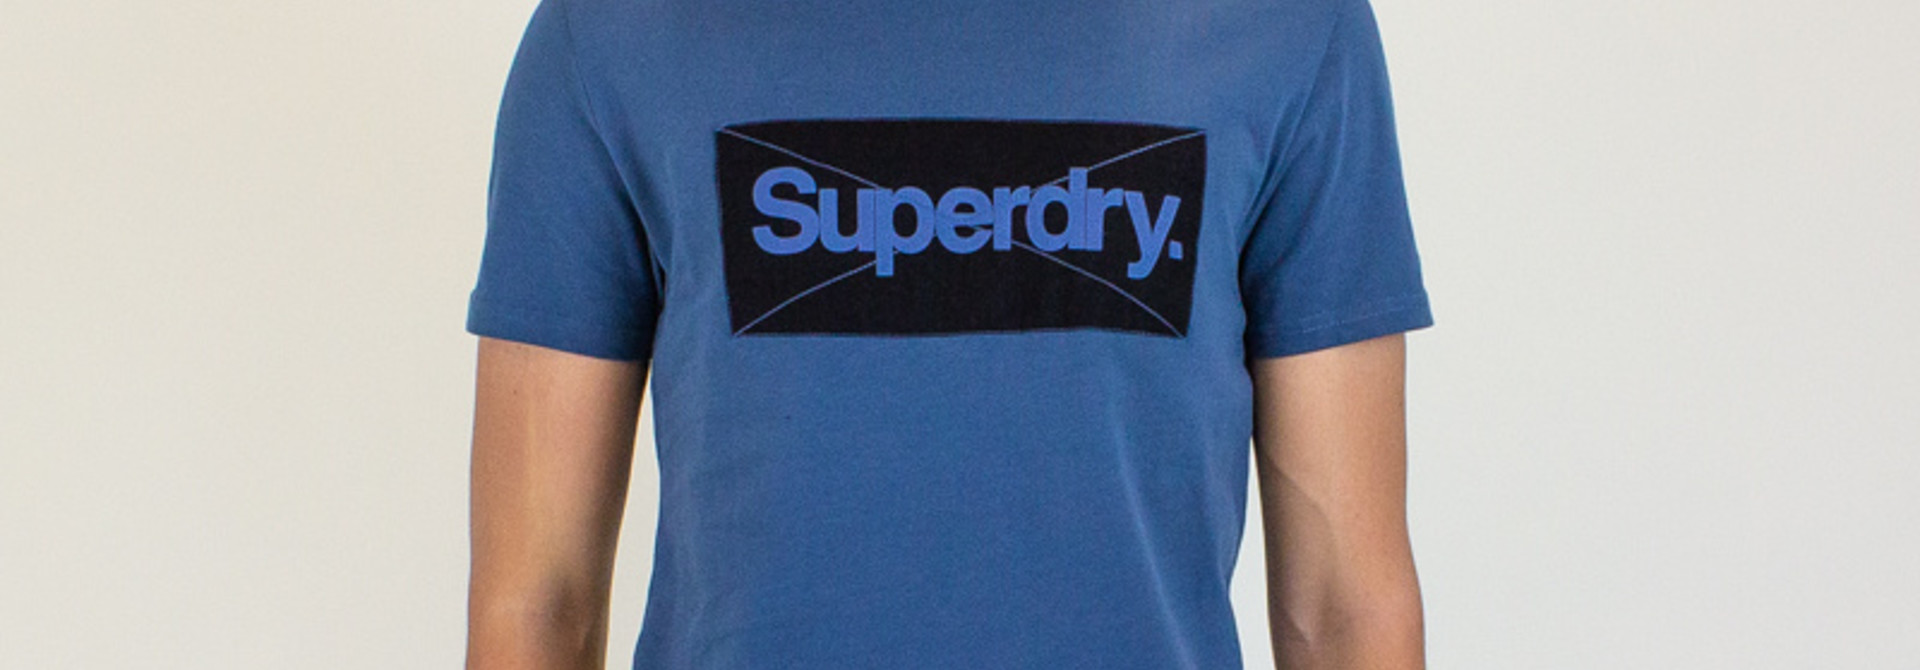 Superdry Canvas Tee - Heritage